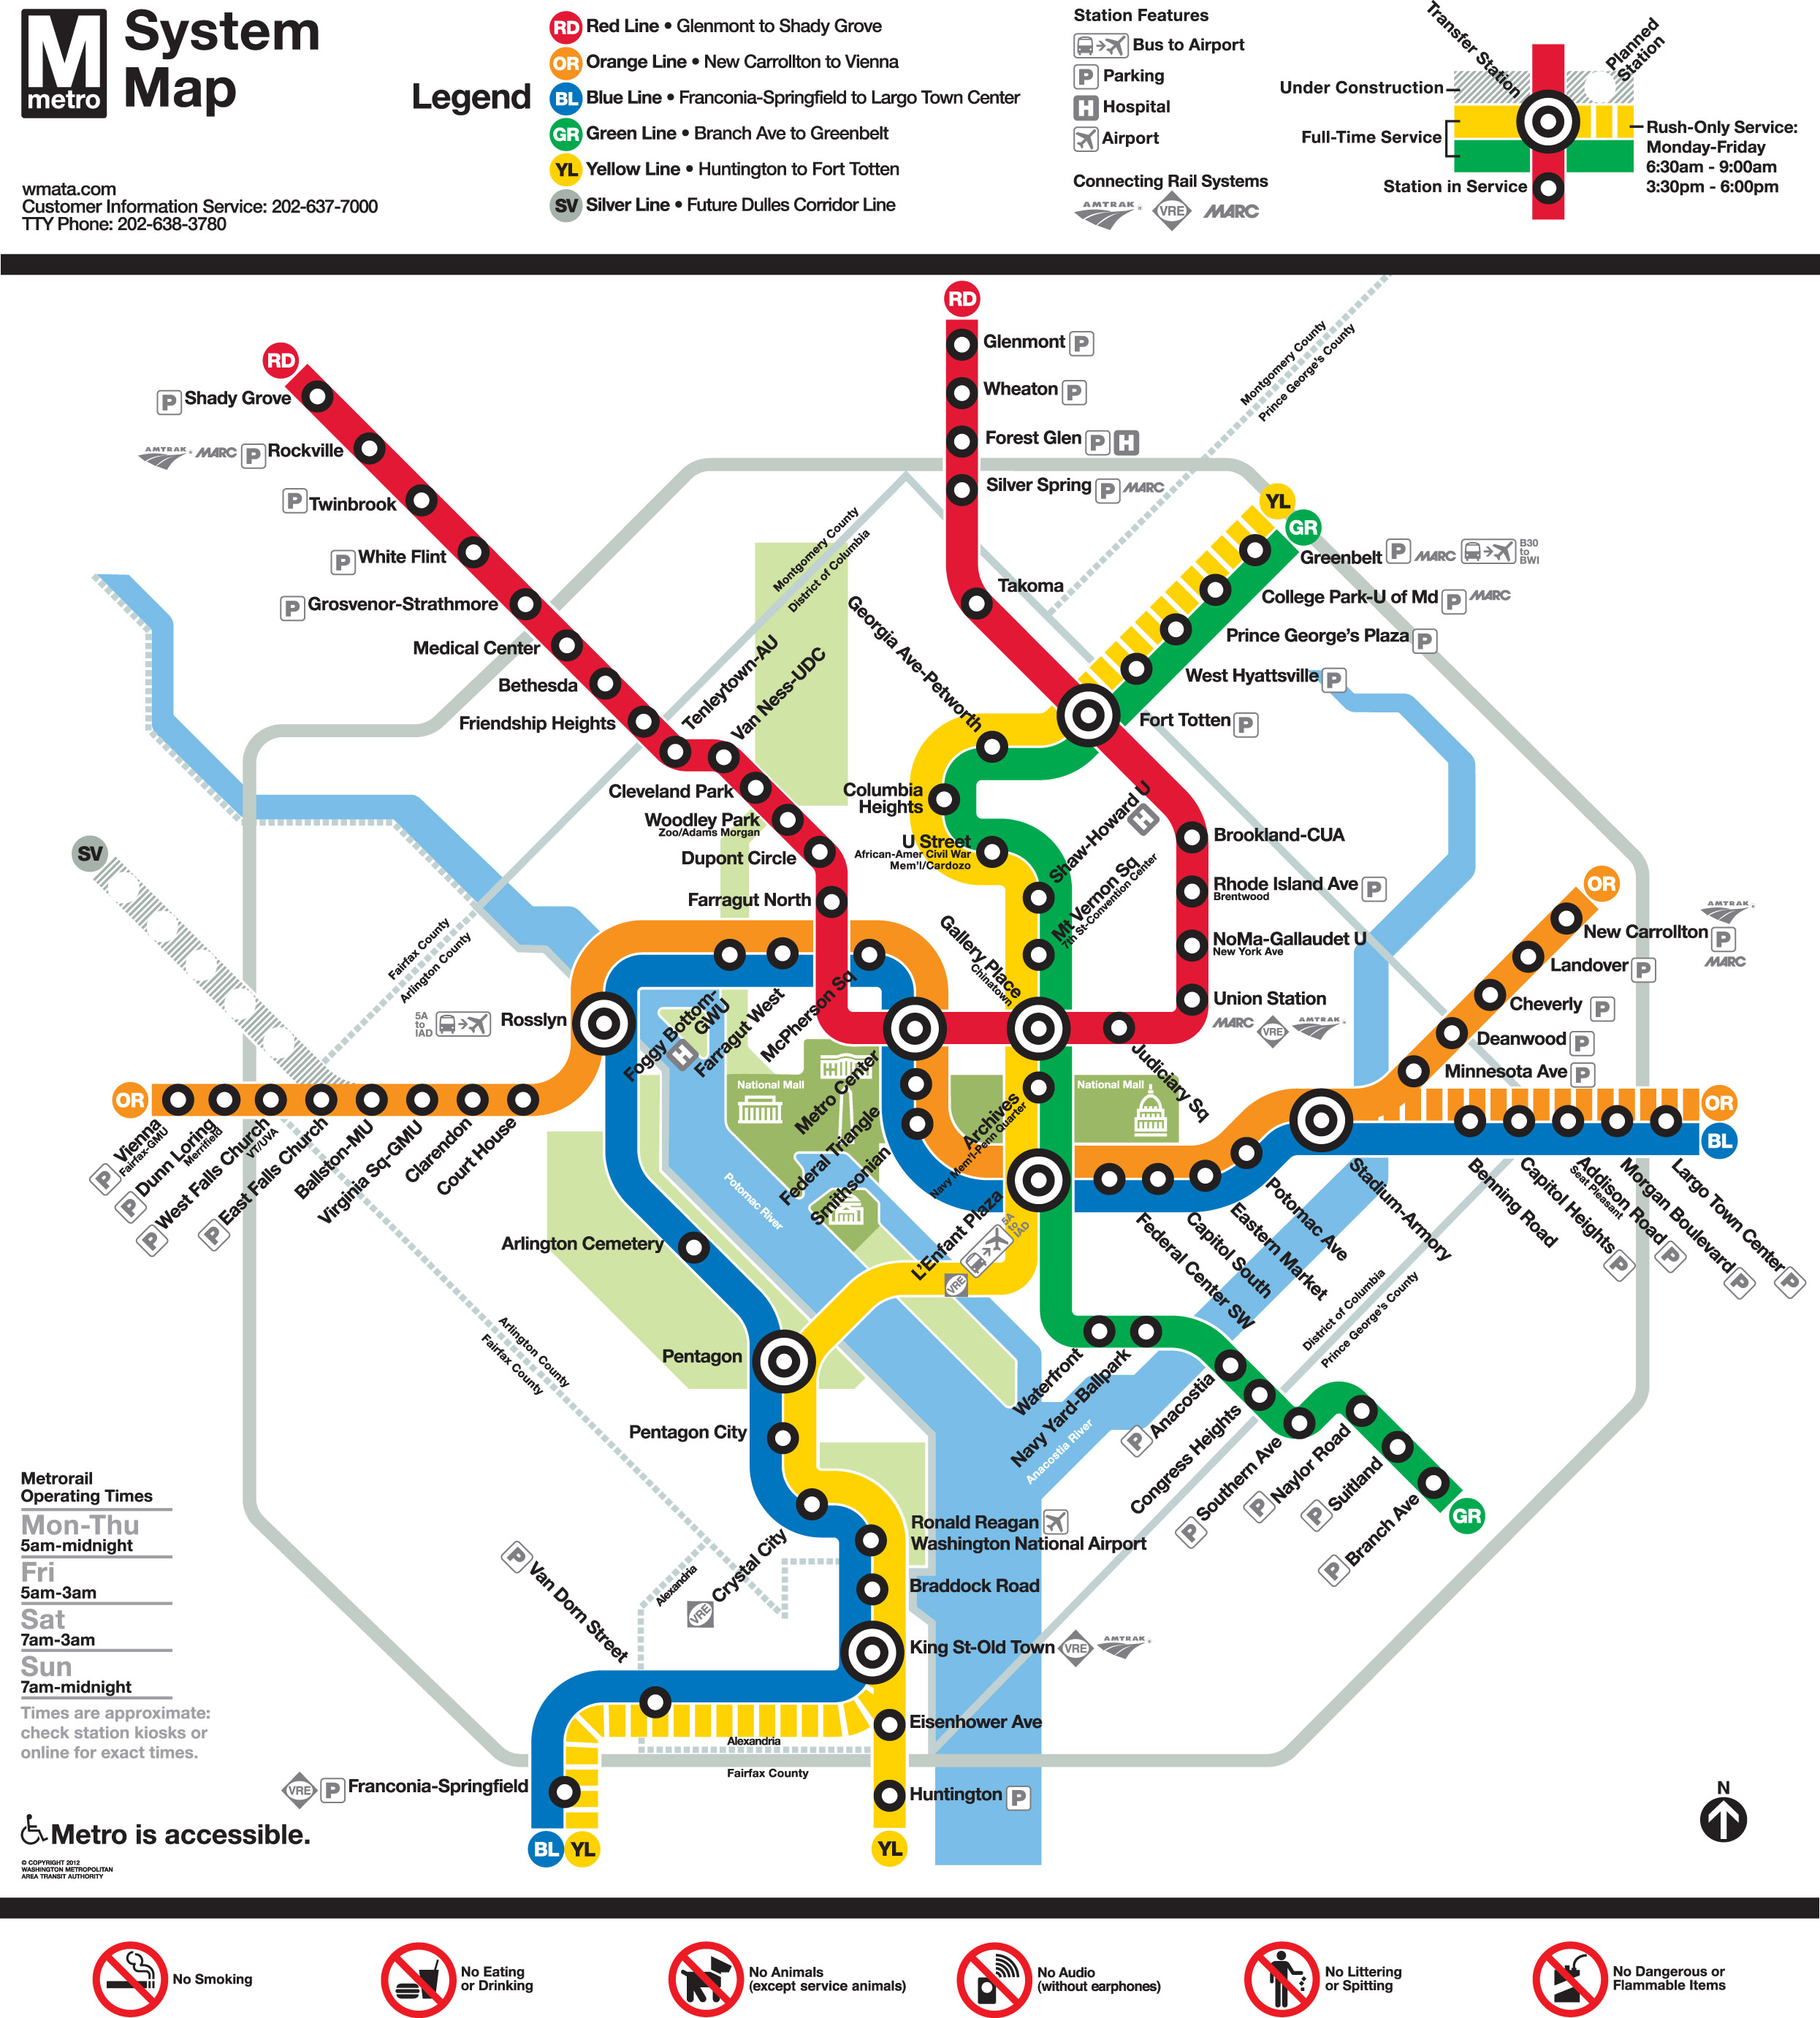 Building a Better Subway Map – National Geographic Education Blog